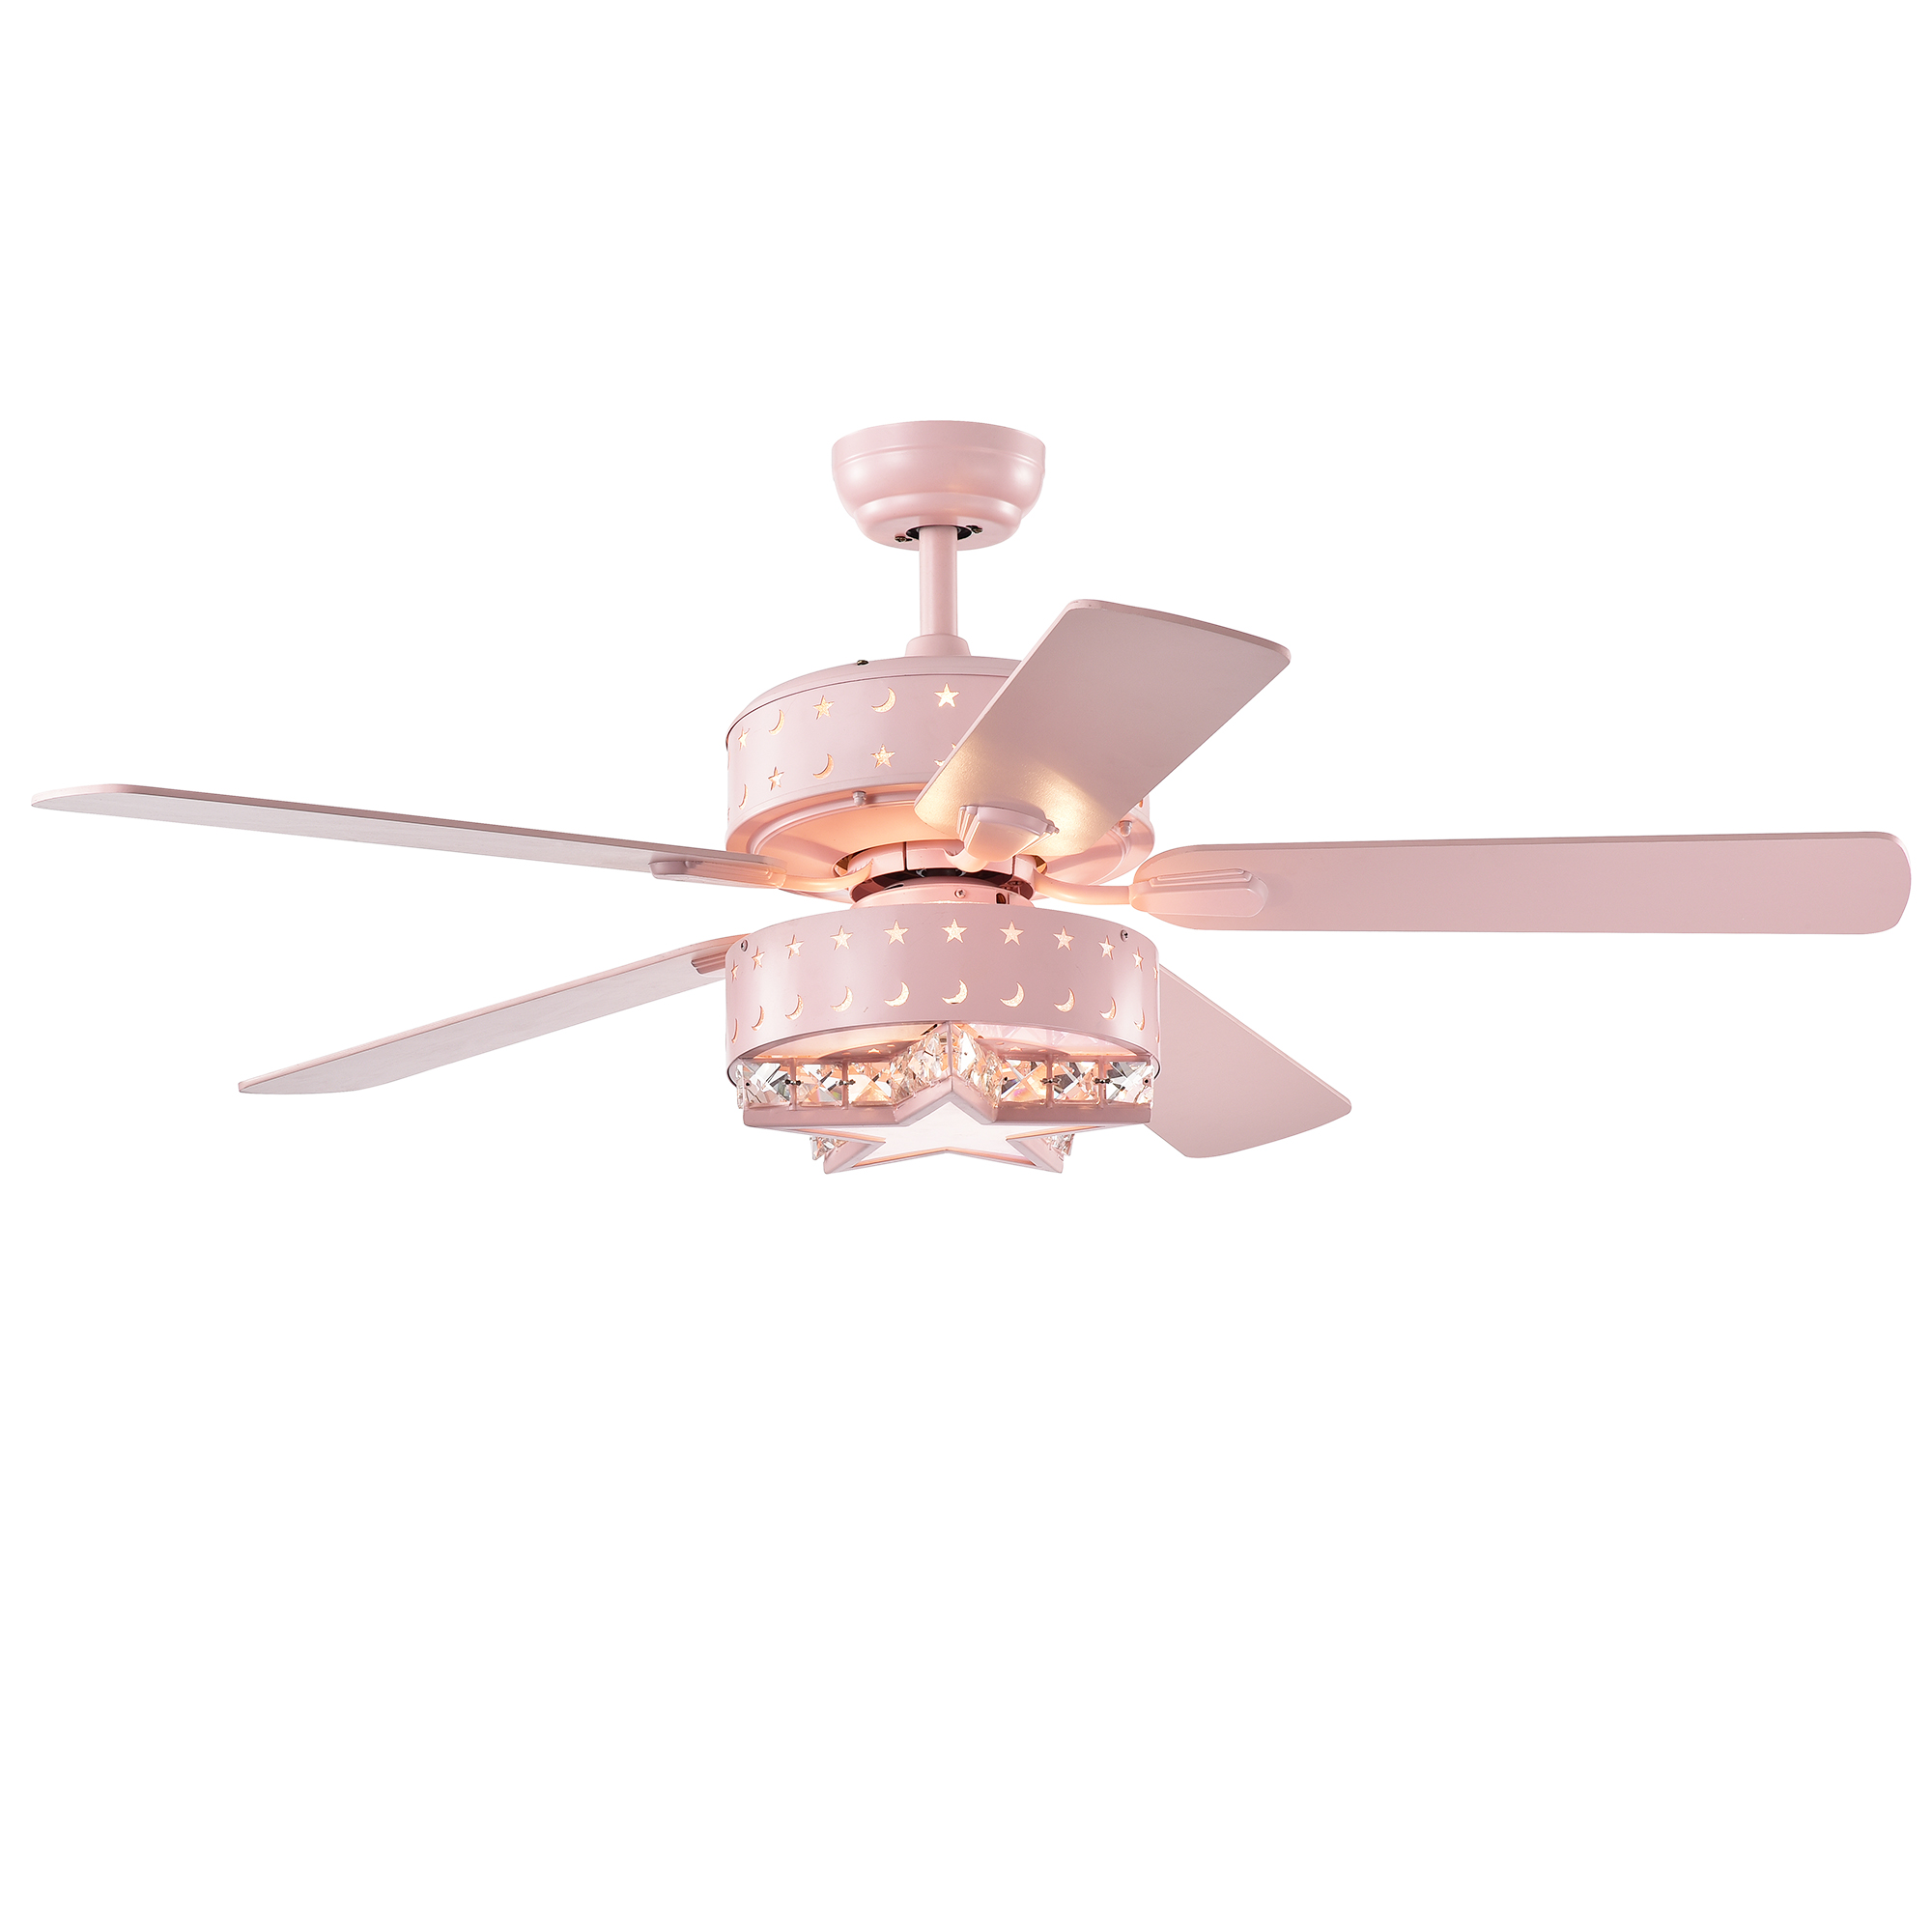 Funder 52-inch Star & Crescent Lighted Ceiling Fan Pink (includes Remote)